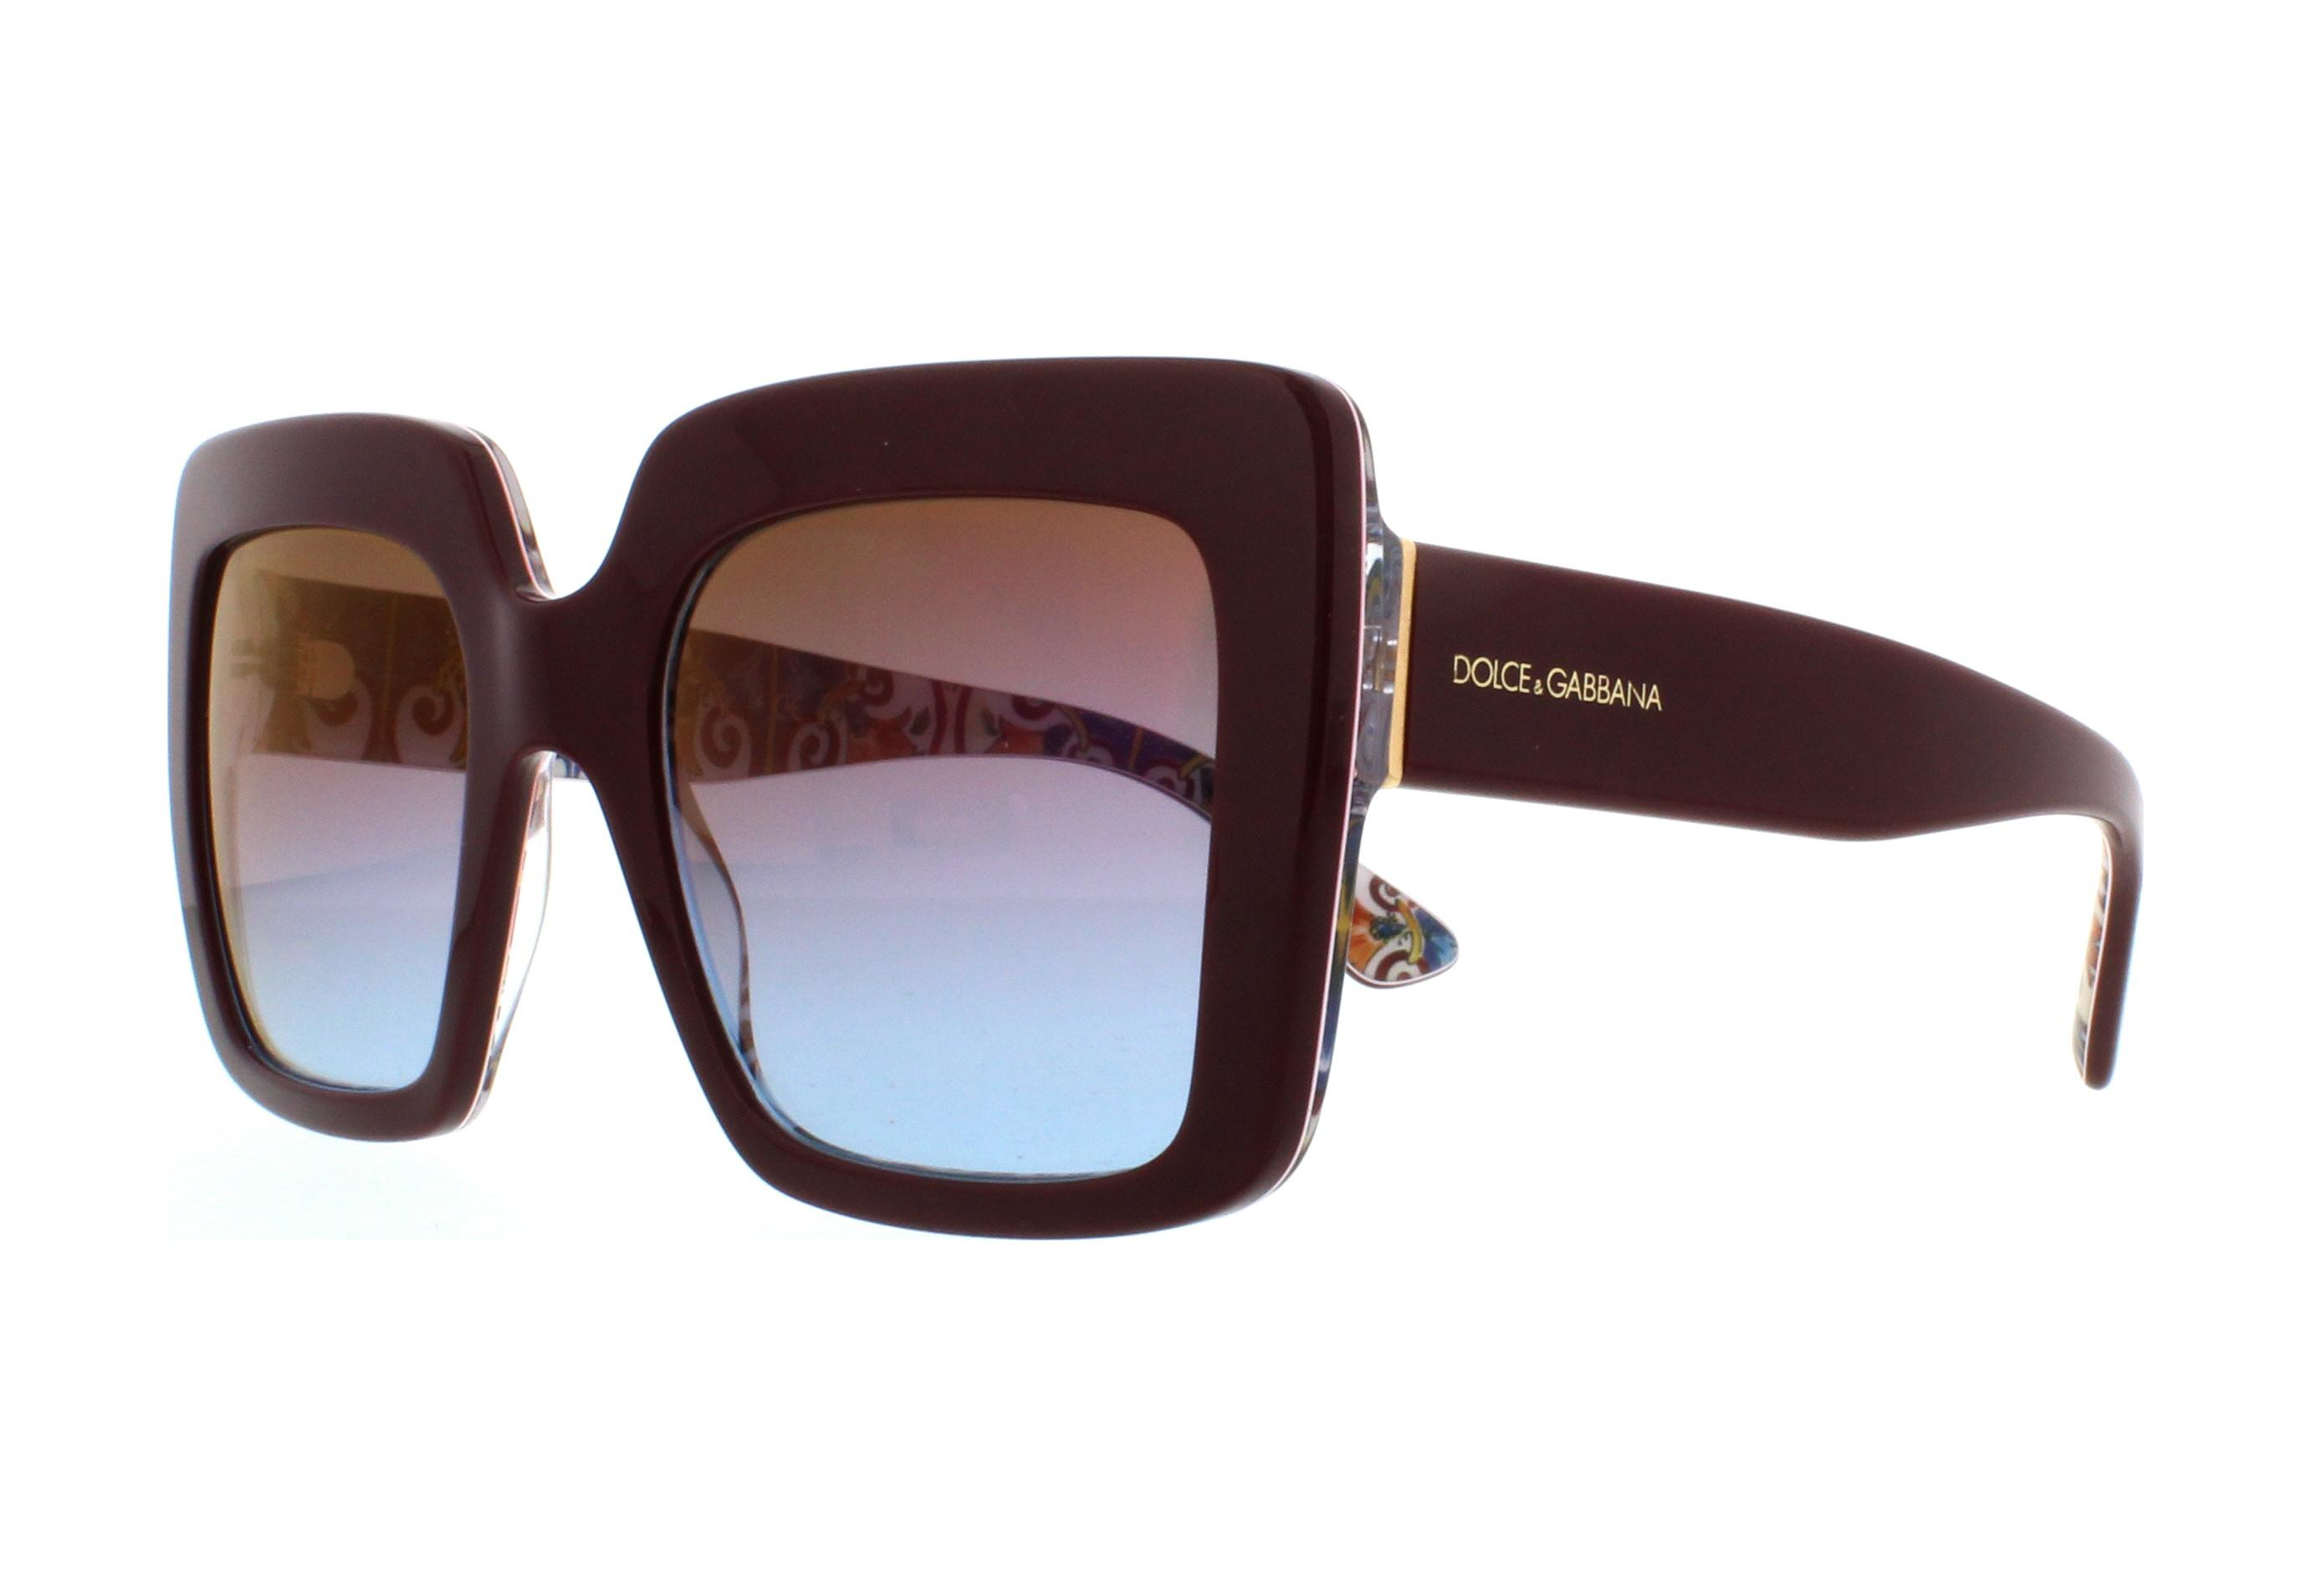 6bf9a53709b Details about DOLCE   GABBANA Sunglasses DG4310 317948 Bordeaux On New  Maiolica 52MM